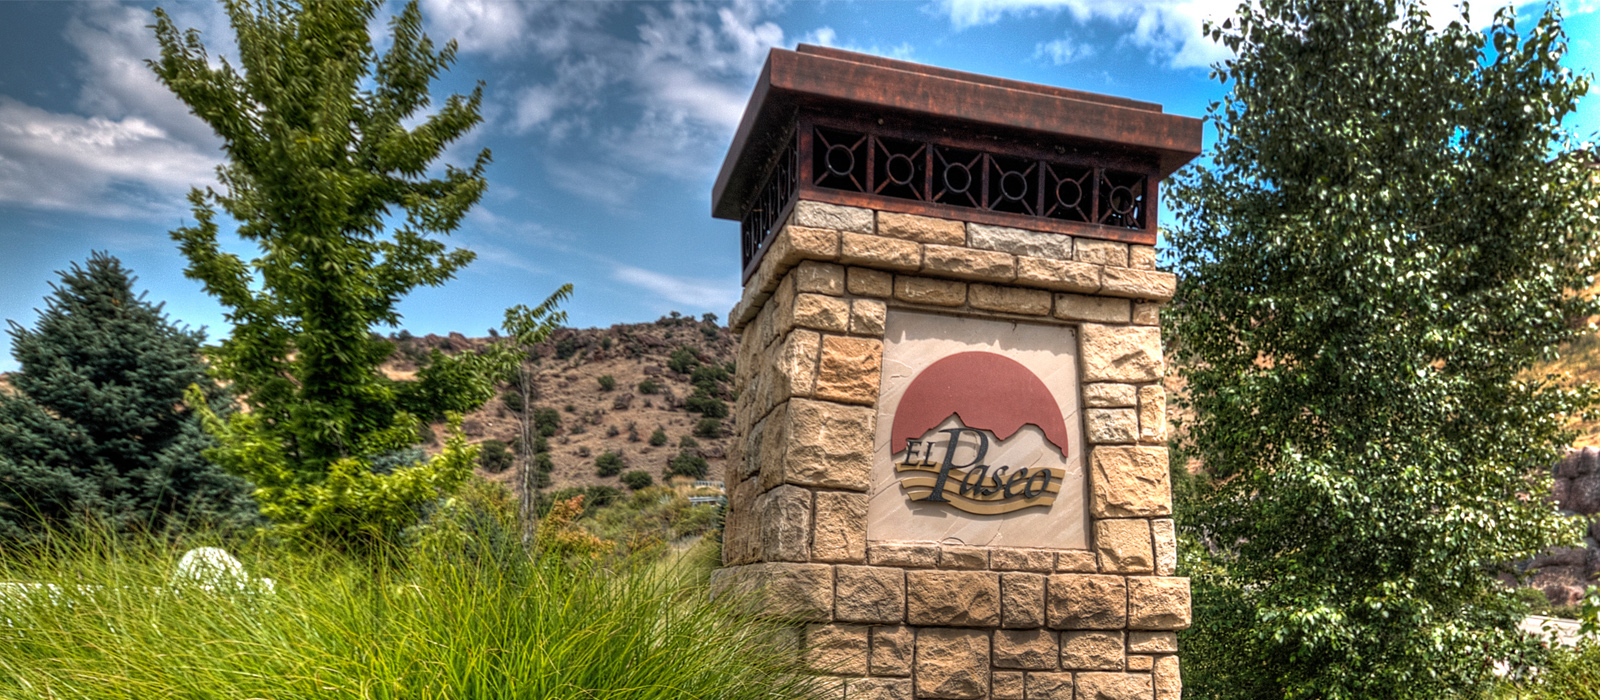 Most Exclusive Communities For New Homes In Boise Idaho